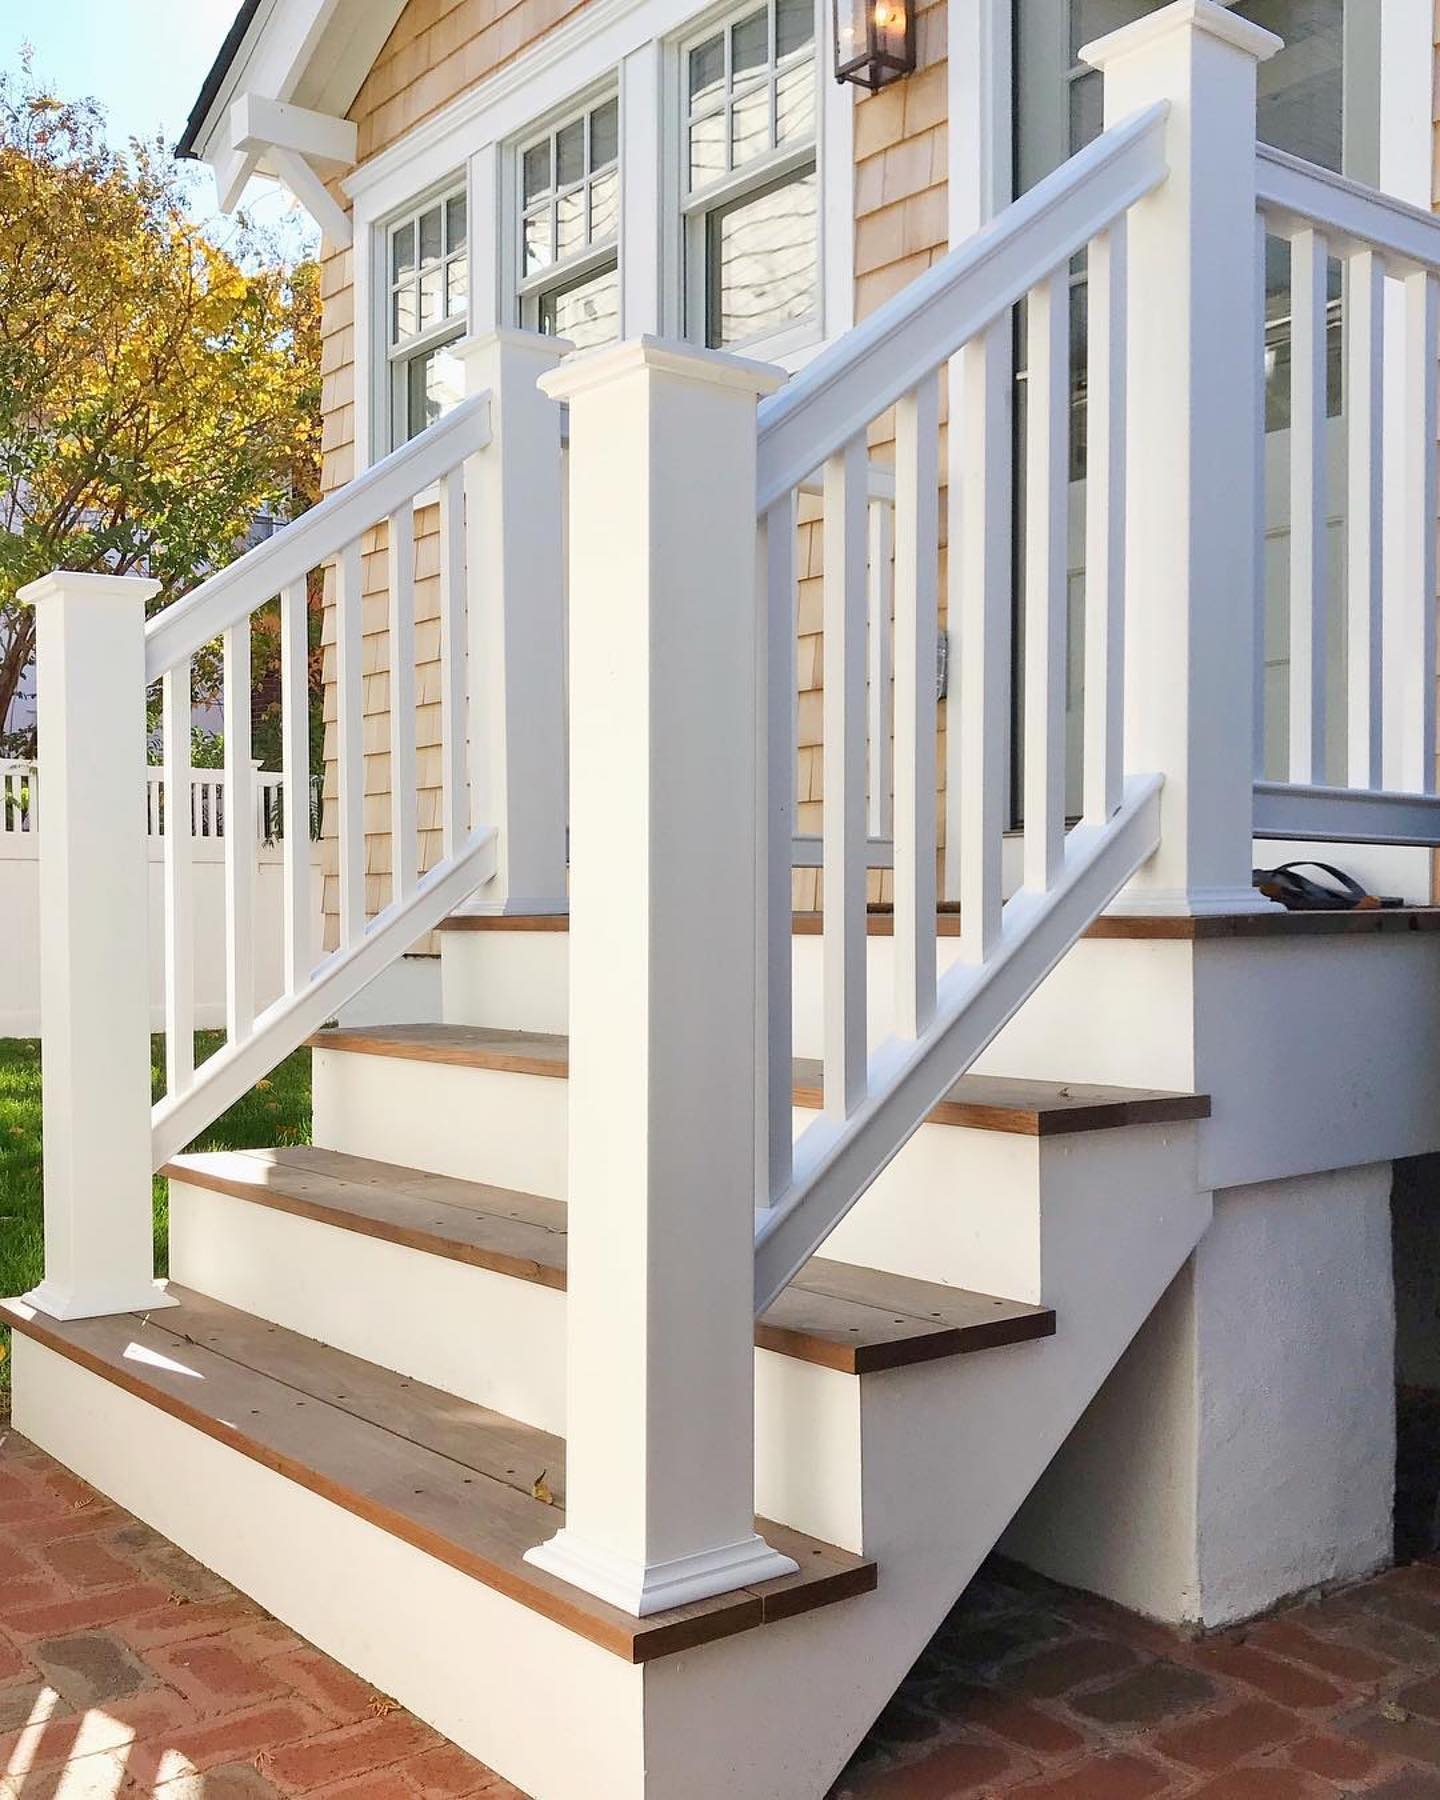 Newel Post Wraps Intex Millwork   Shaker Style Newel Post   Stair Newel   Farmhouse   Stained   Porch   Shingle Style